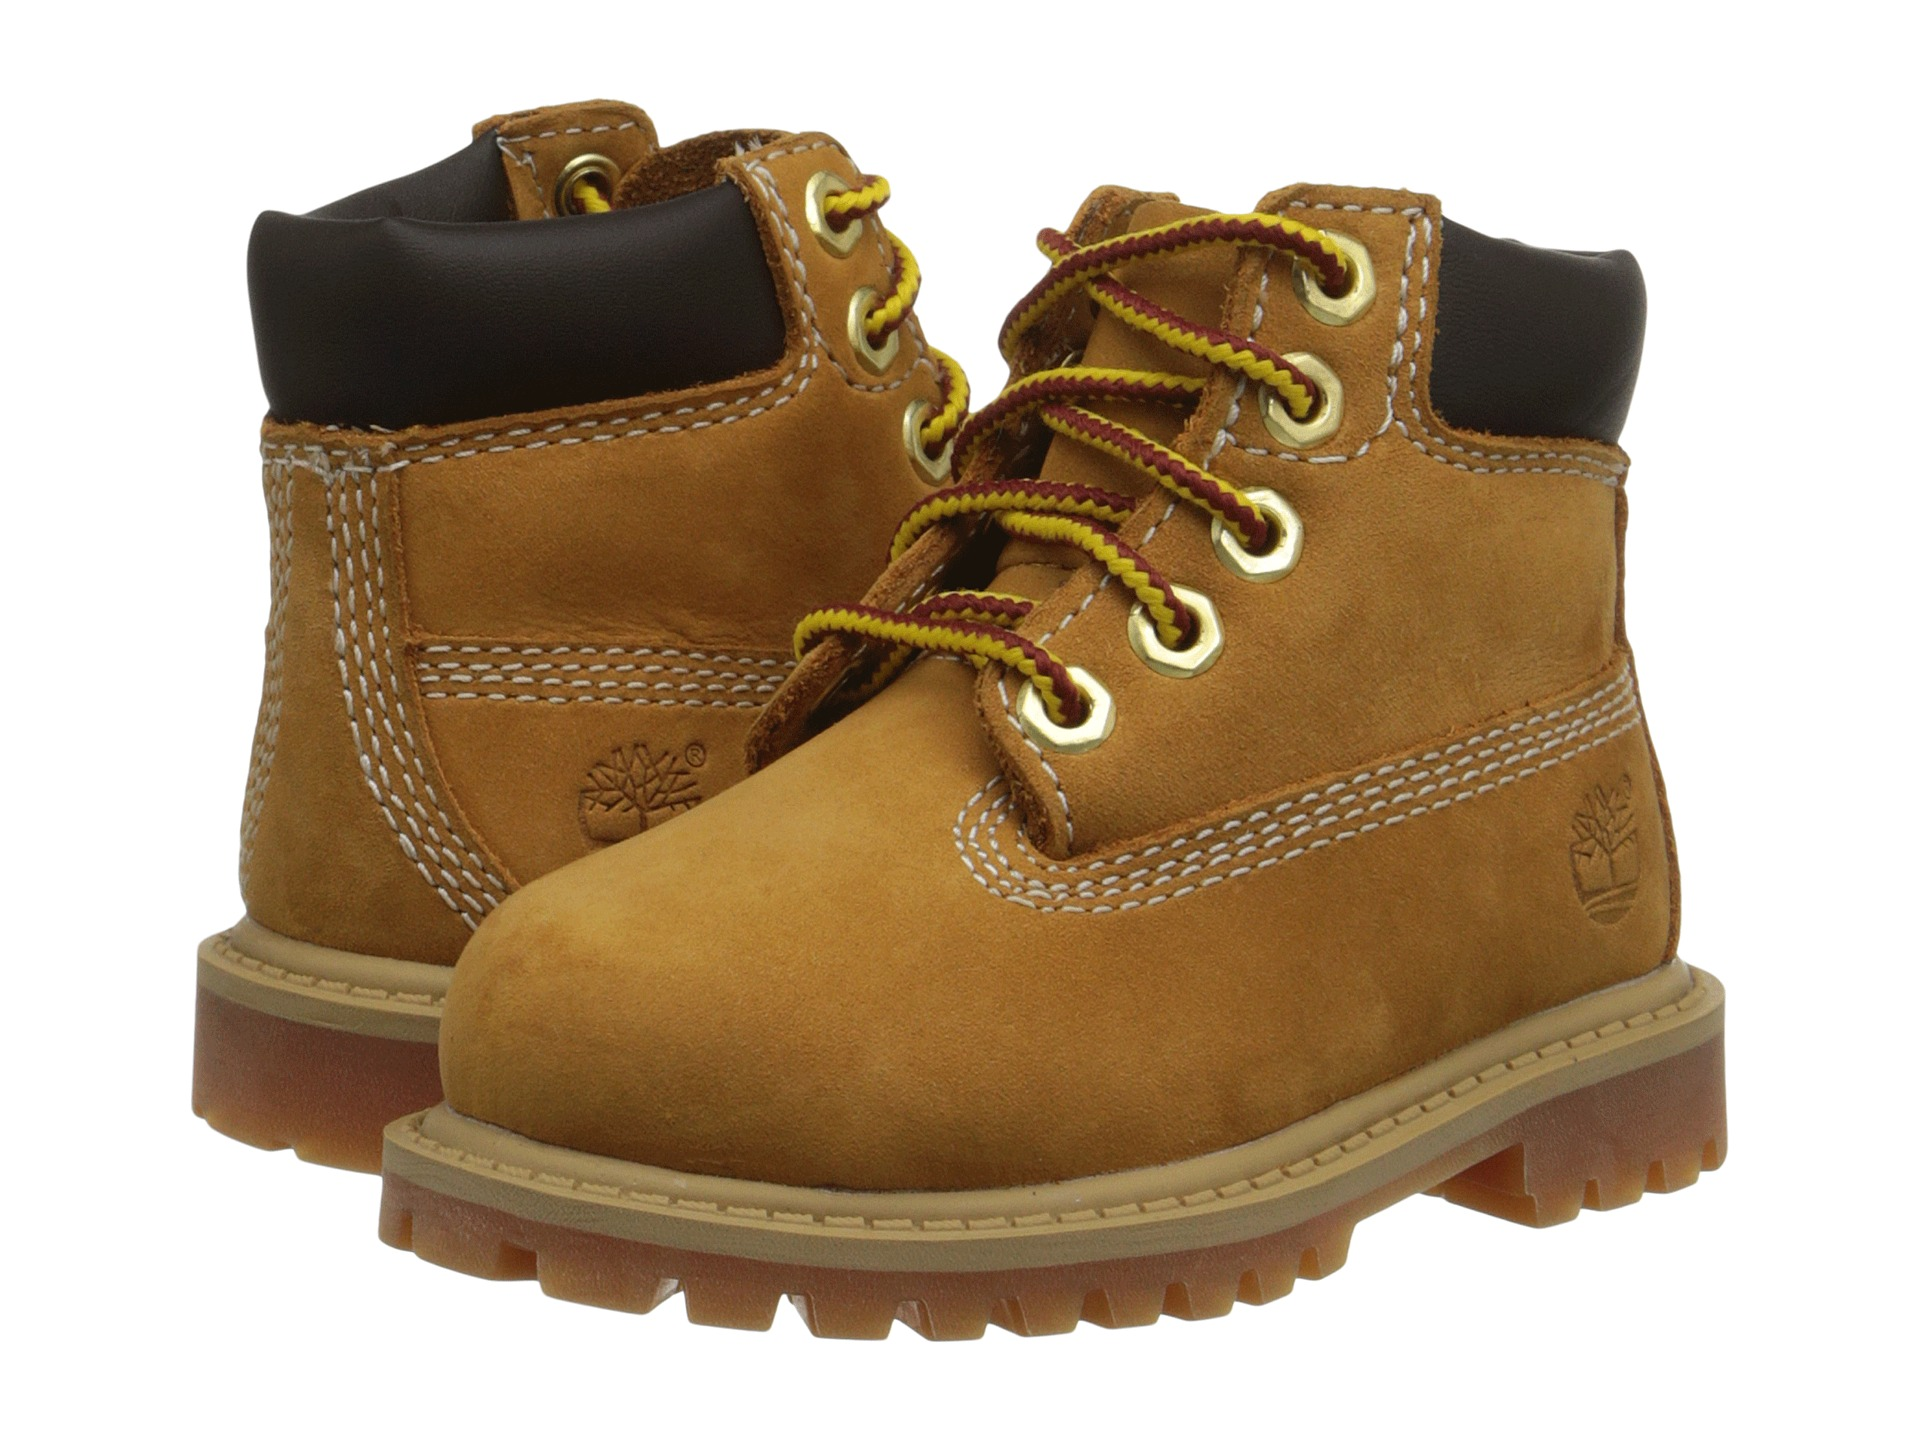 timberland shoes for toddler boys